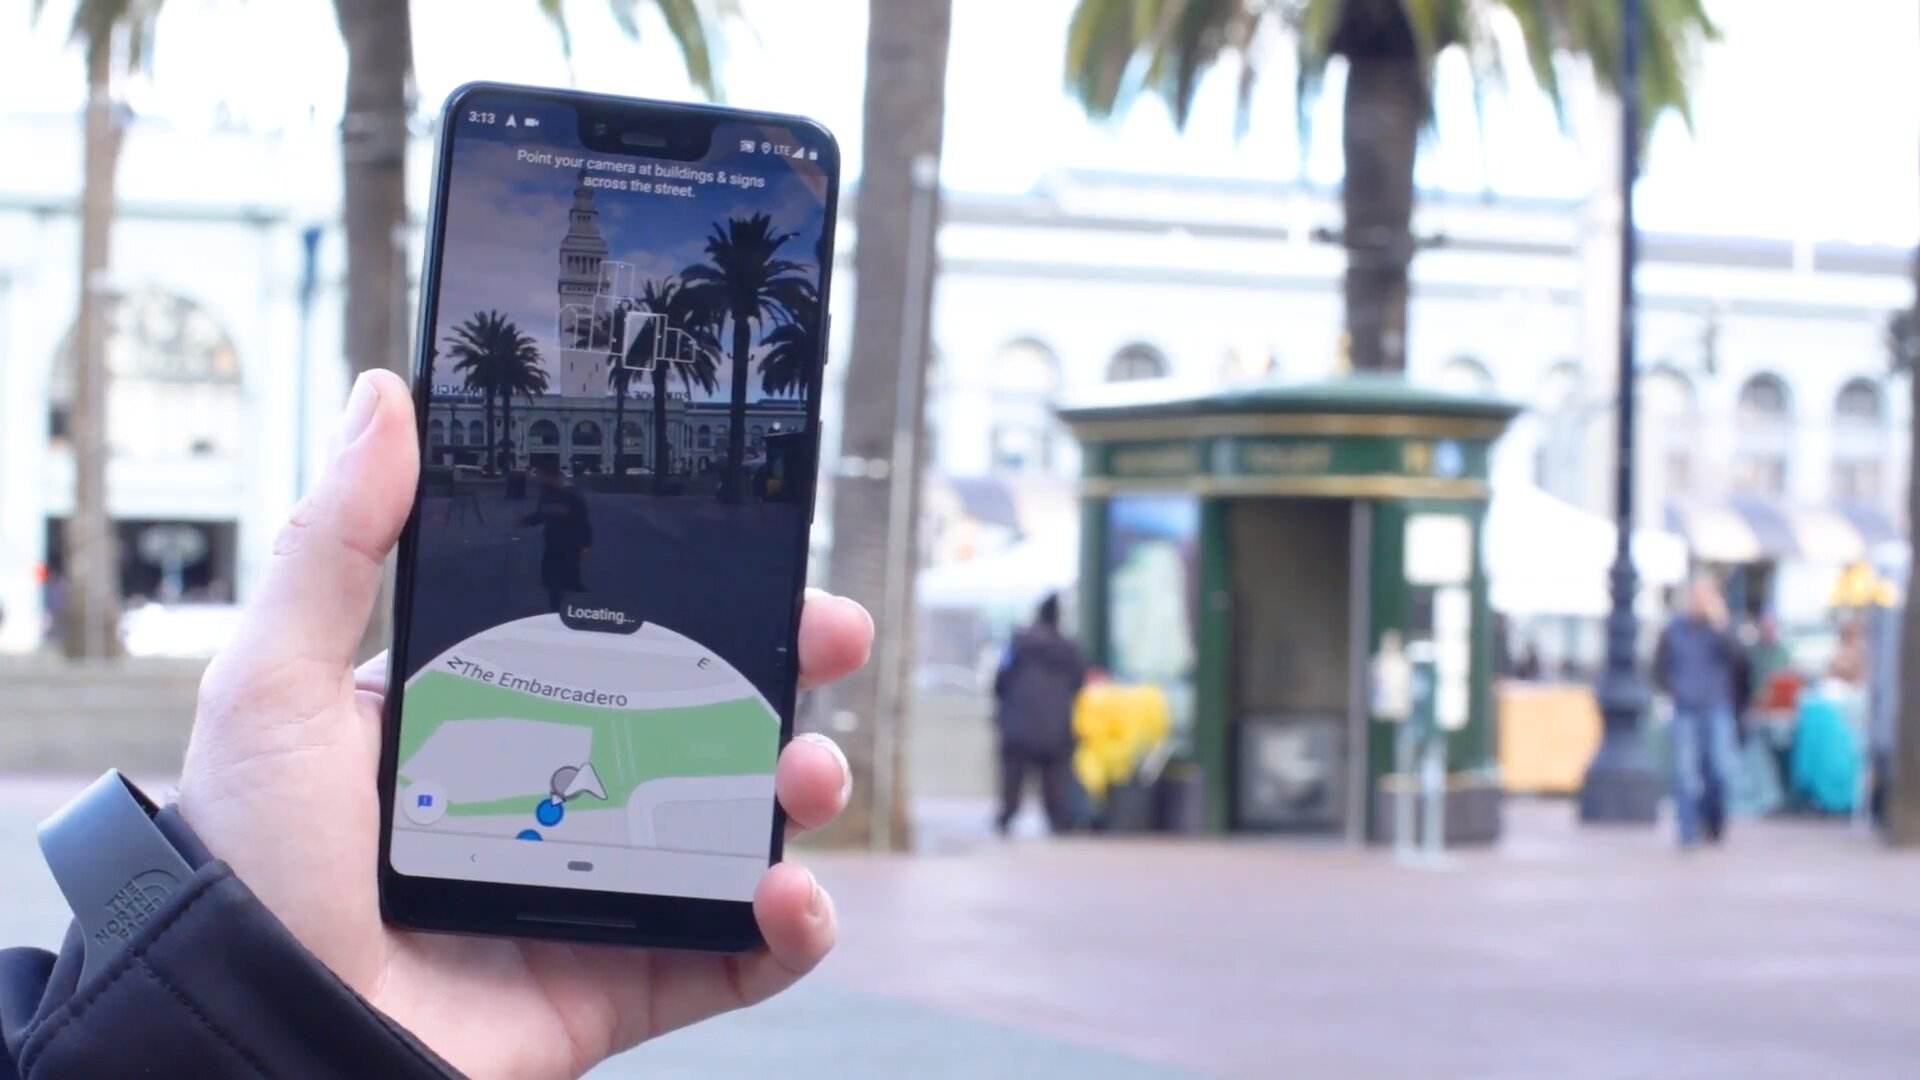 Google Maps must first recognize the environment